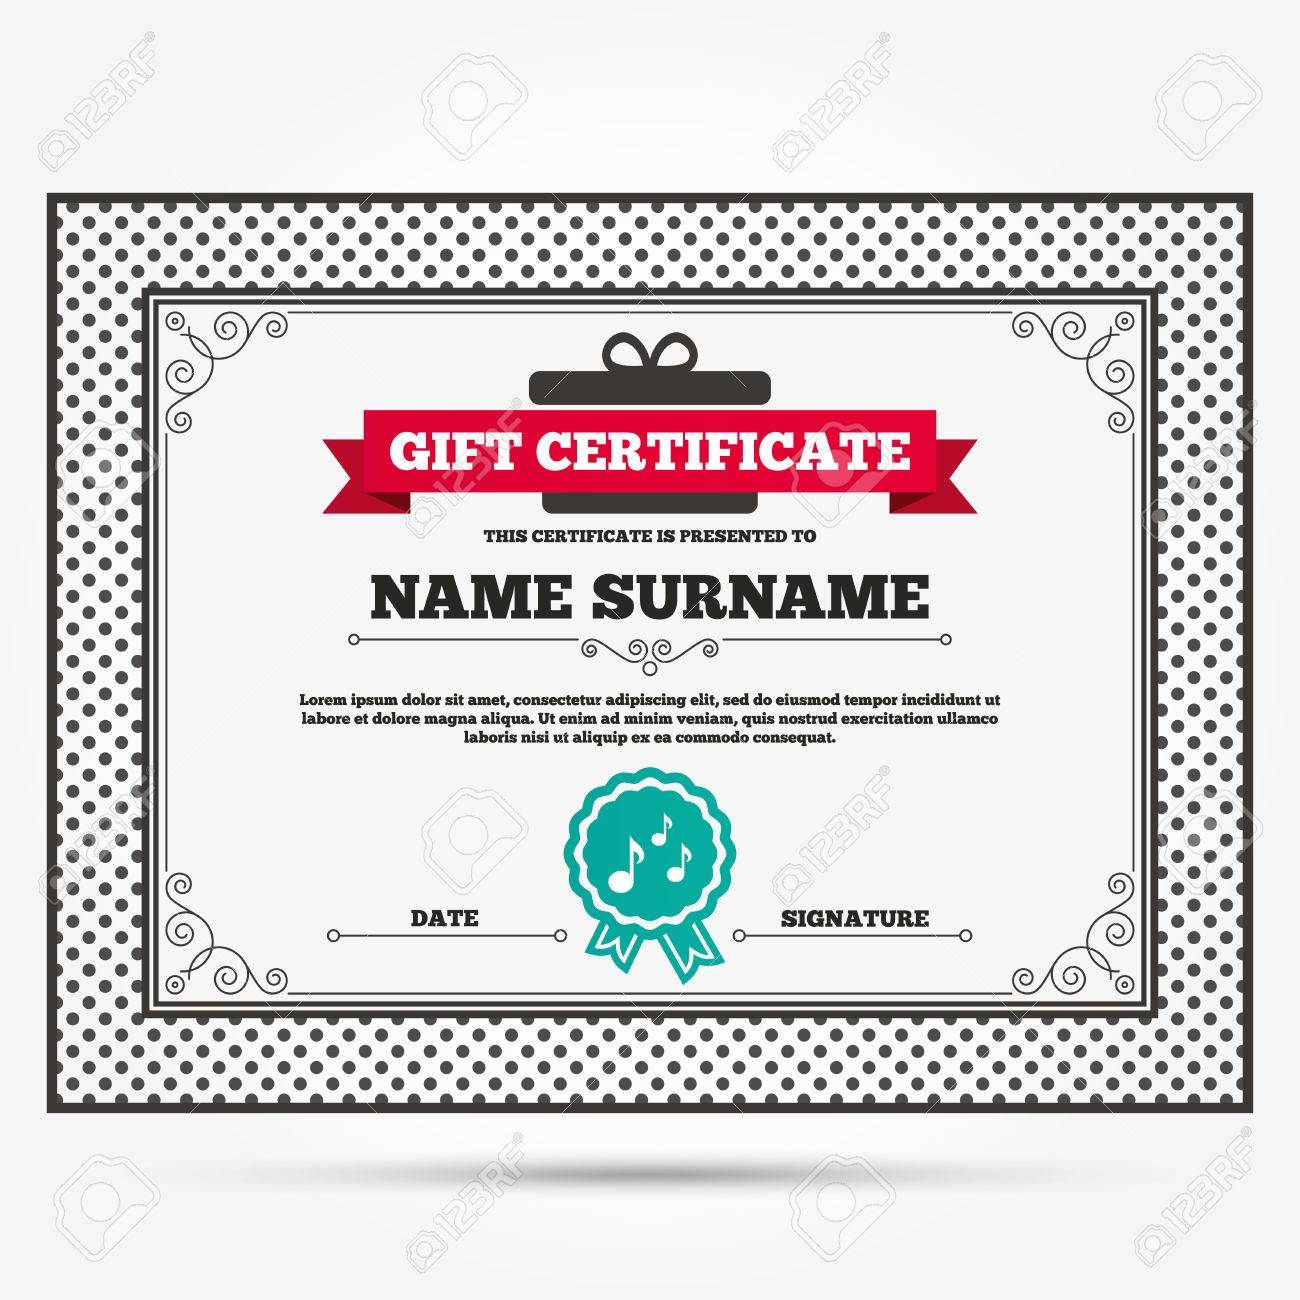 Gift Certificate Music Notes Sign Icon Musical Symbol Template With Vintage Patterns